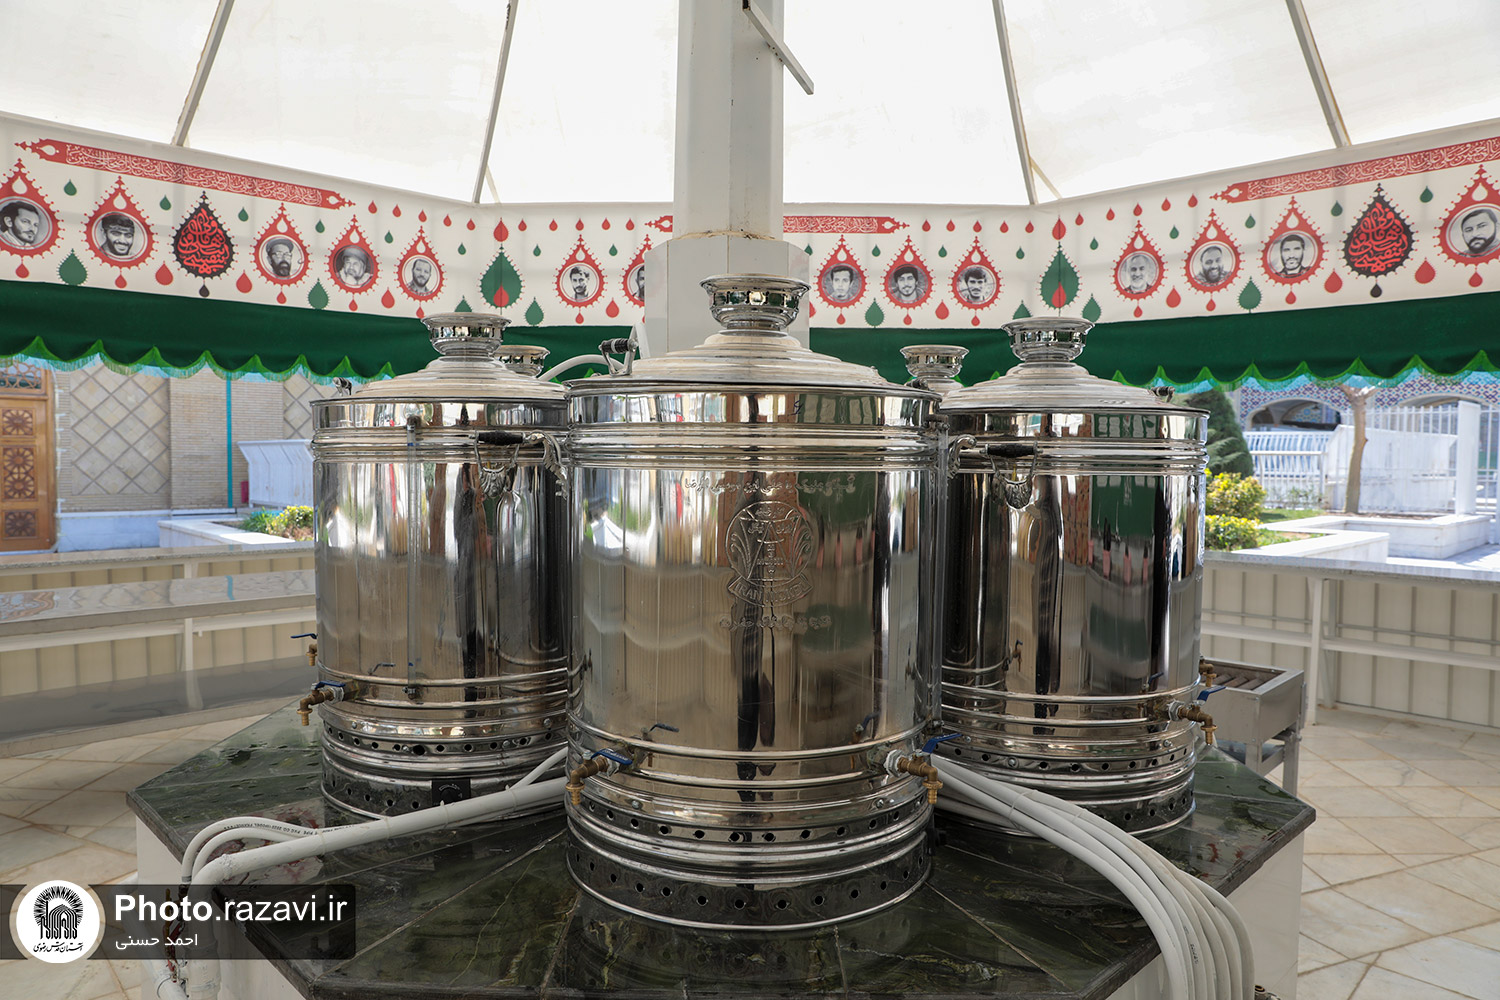 The second permanent teahouse in the holy shrine of Imam Reza (AS) was set up in the Qadir courtyard